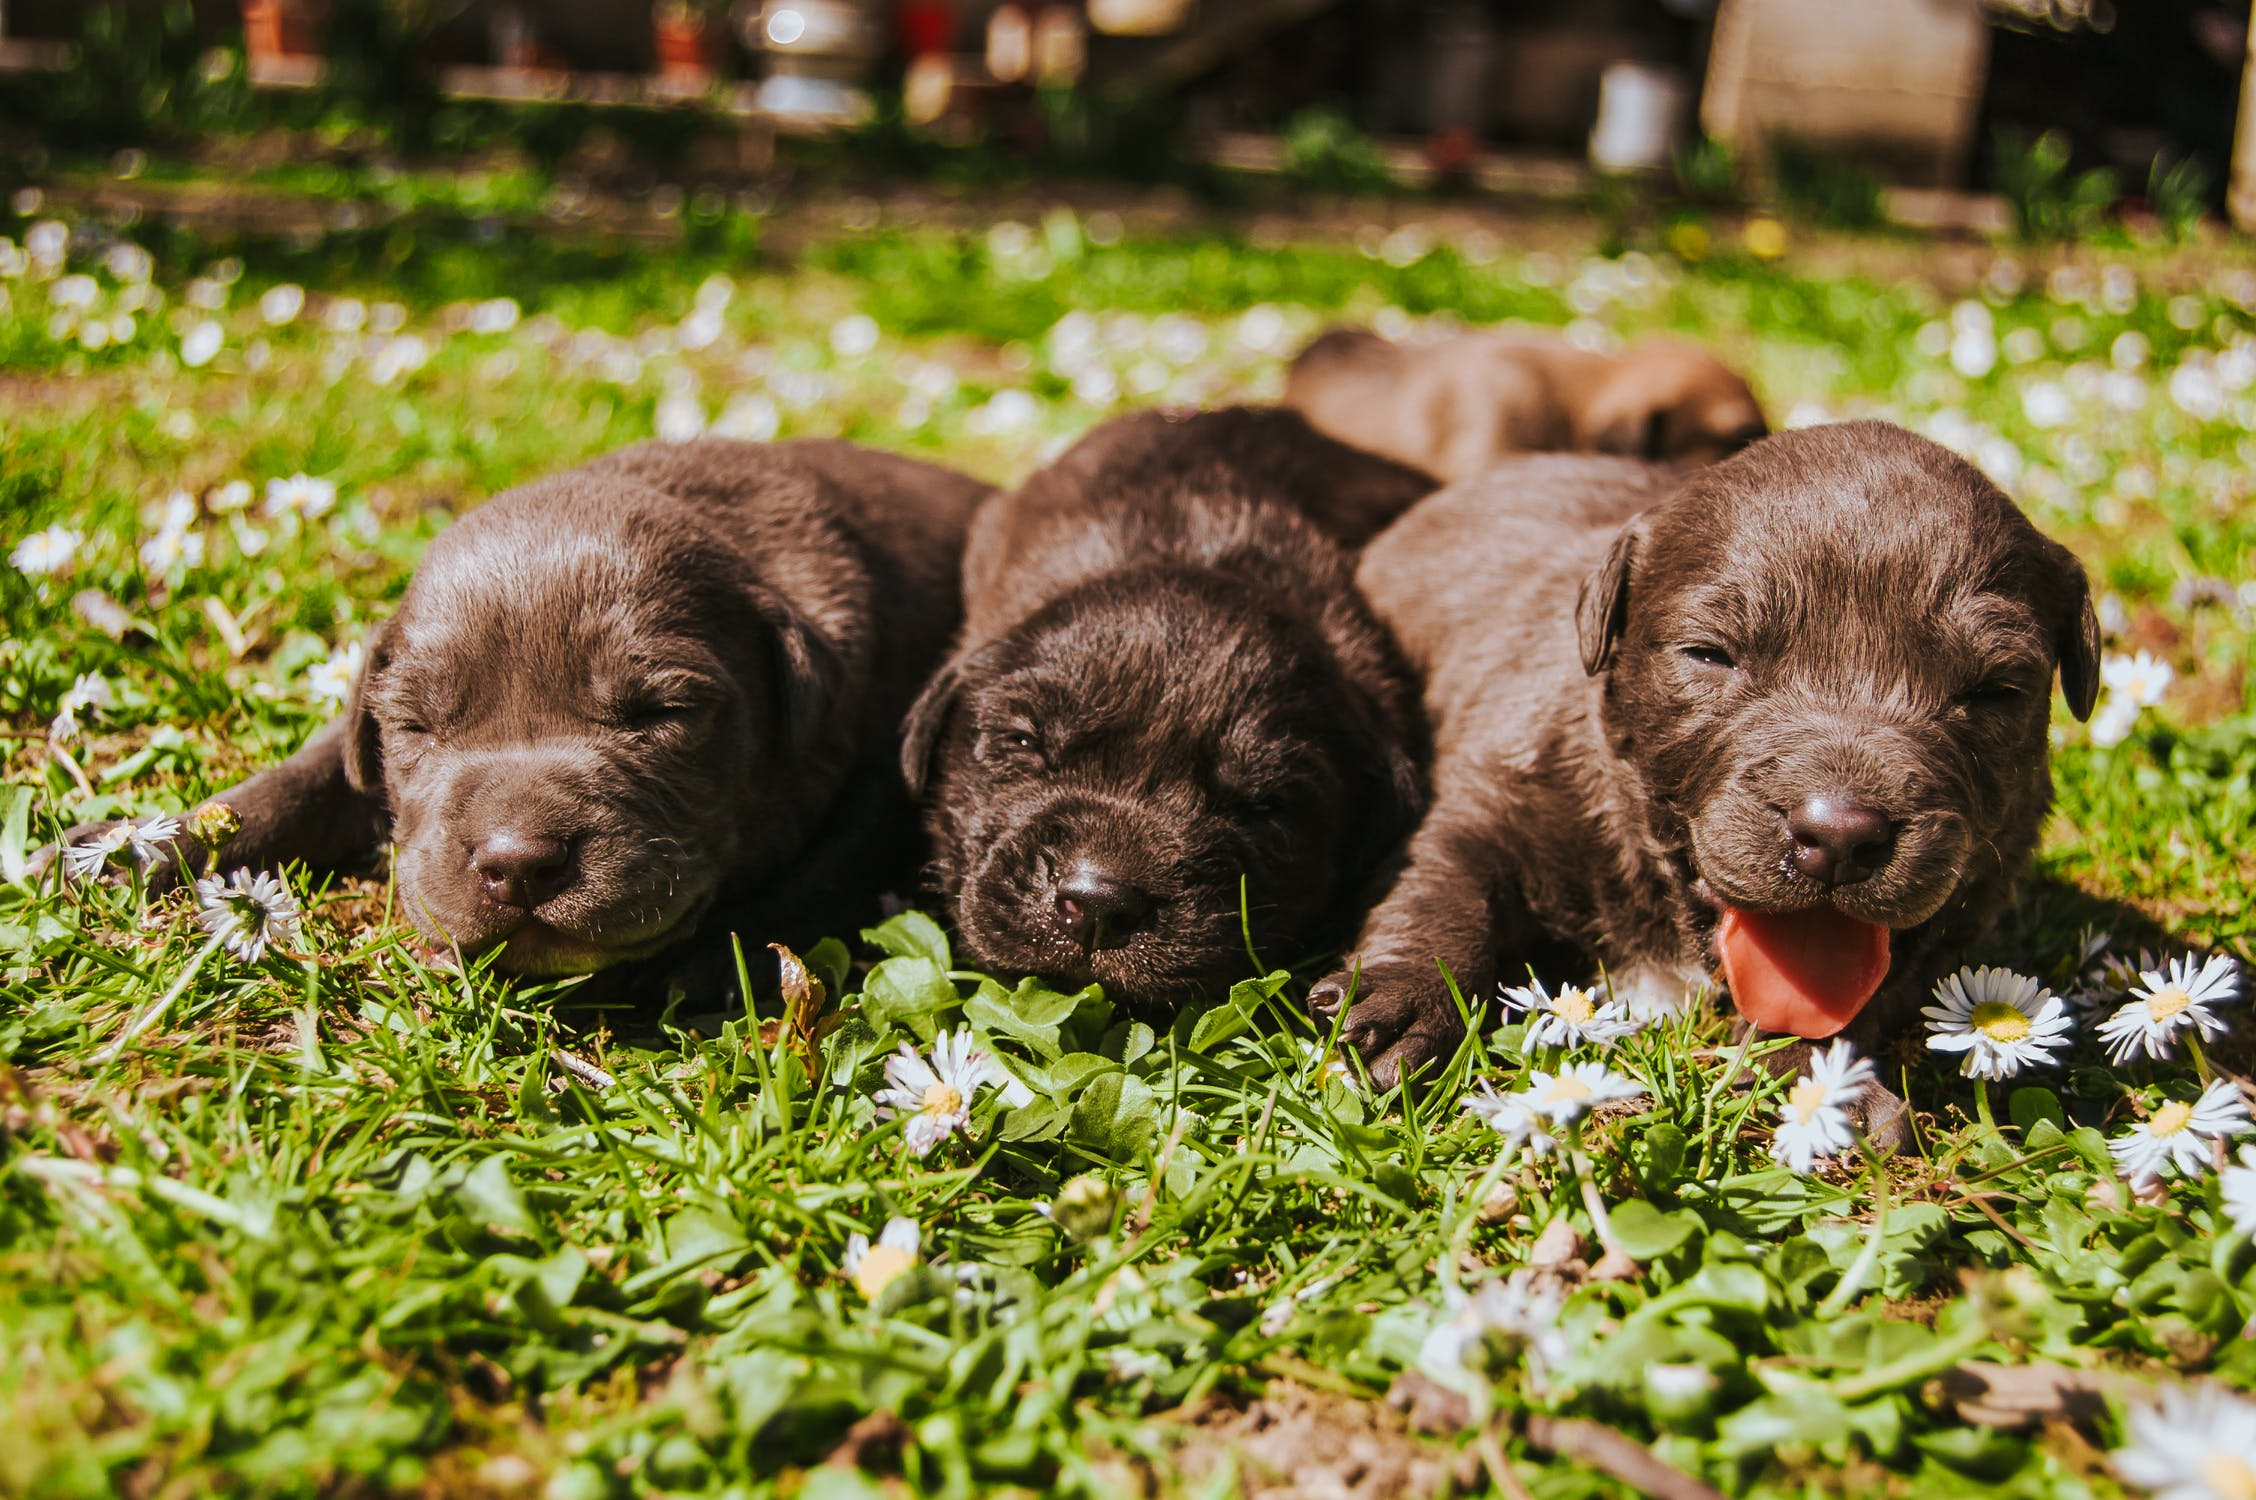 Dog pregnancy calculator tells you when puppies will be born